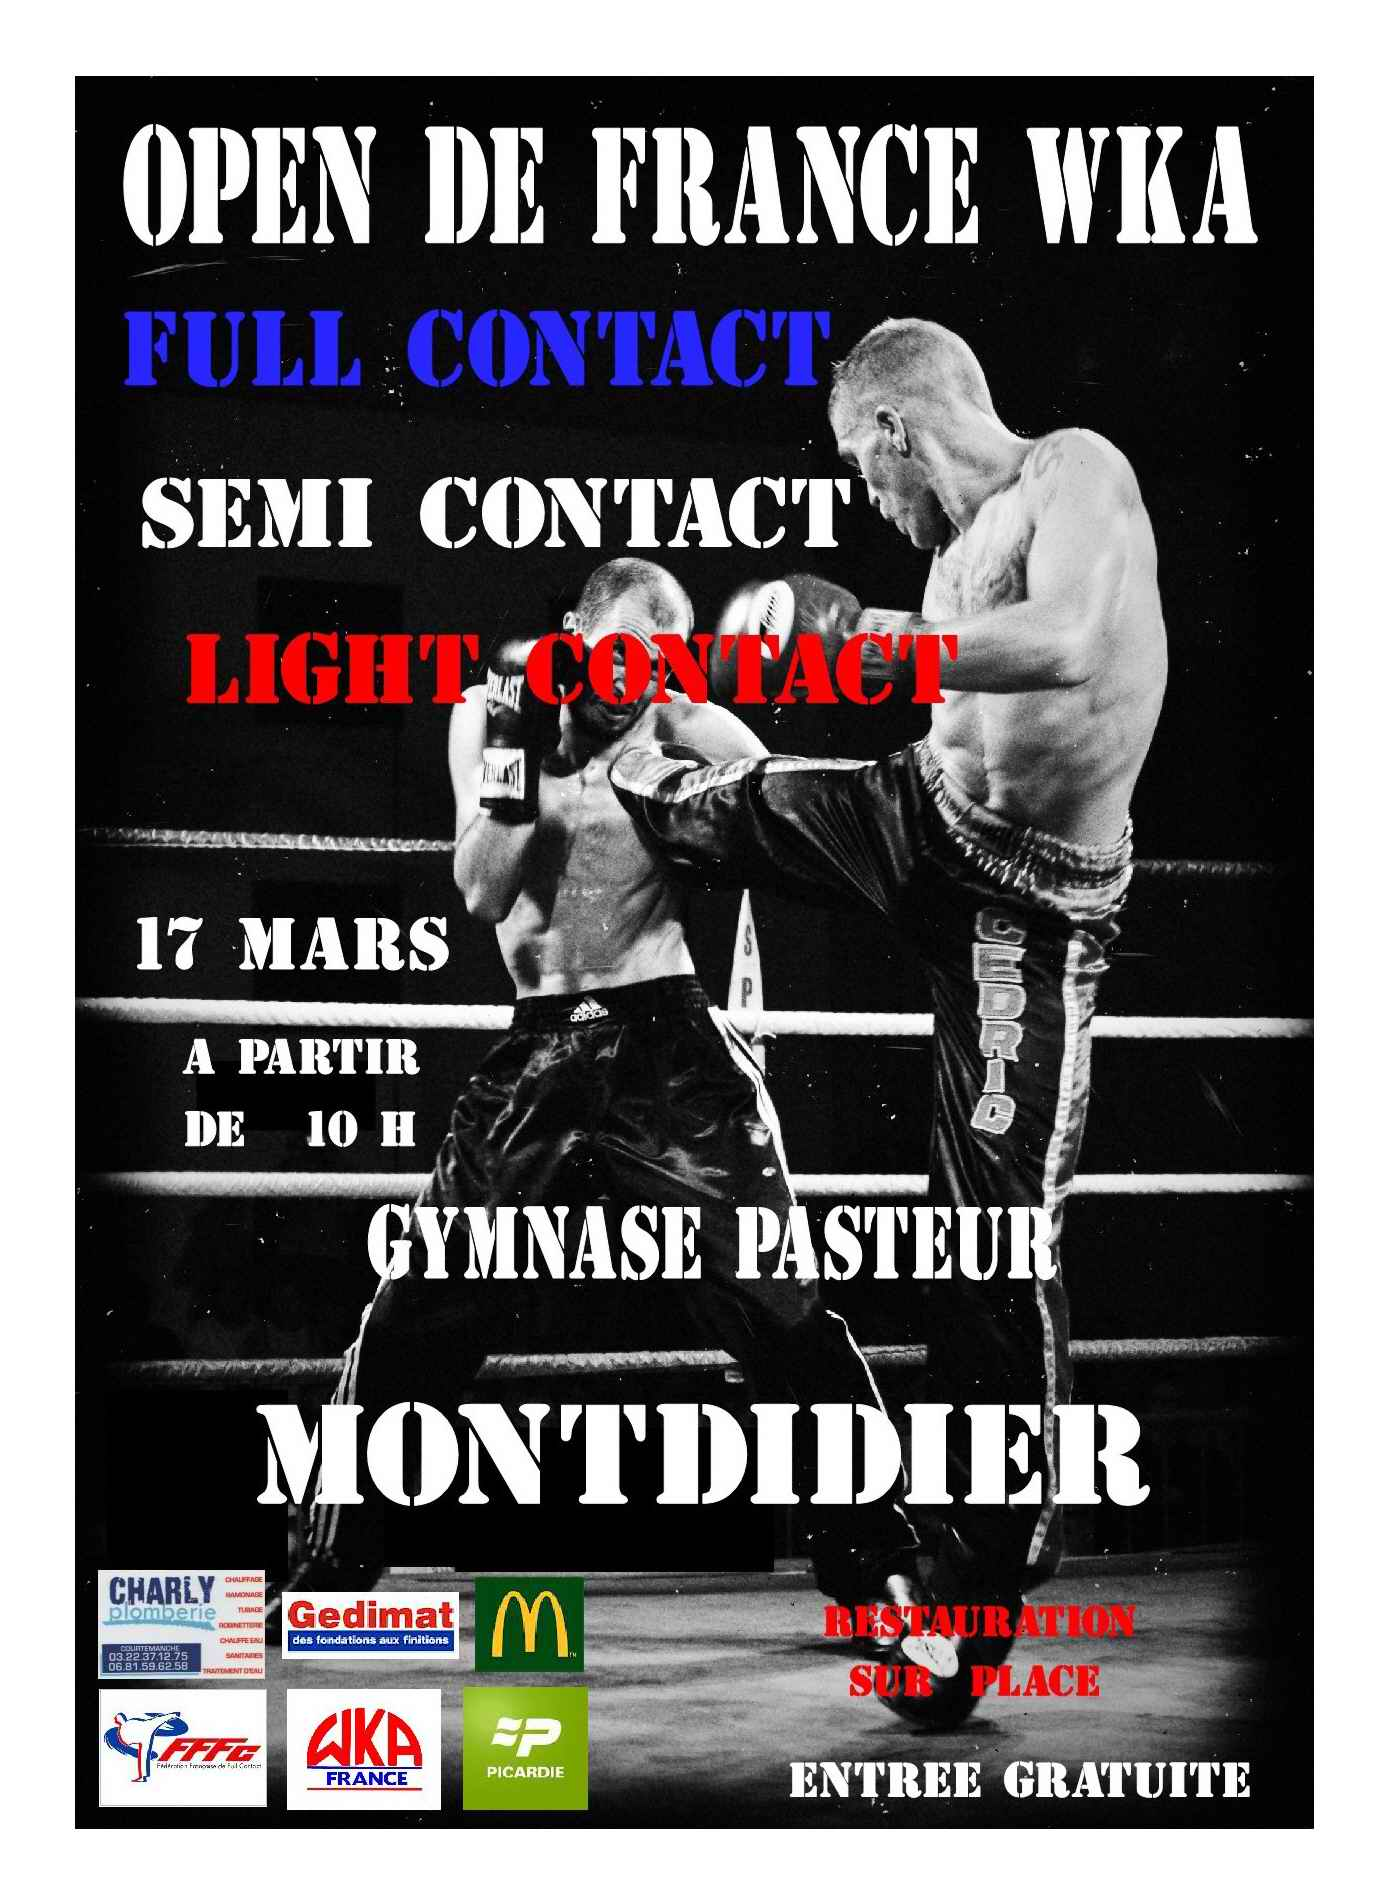 Open de France WKA de Full-Contact